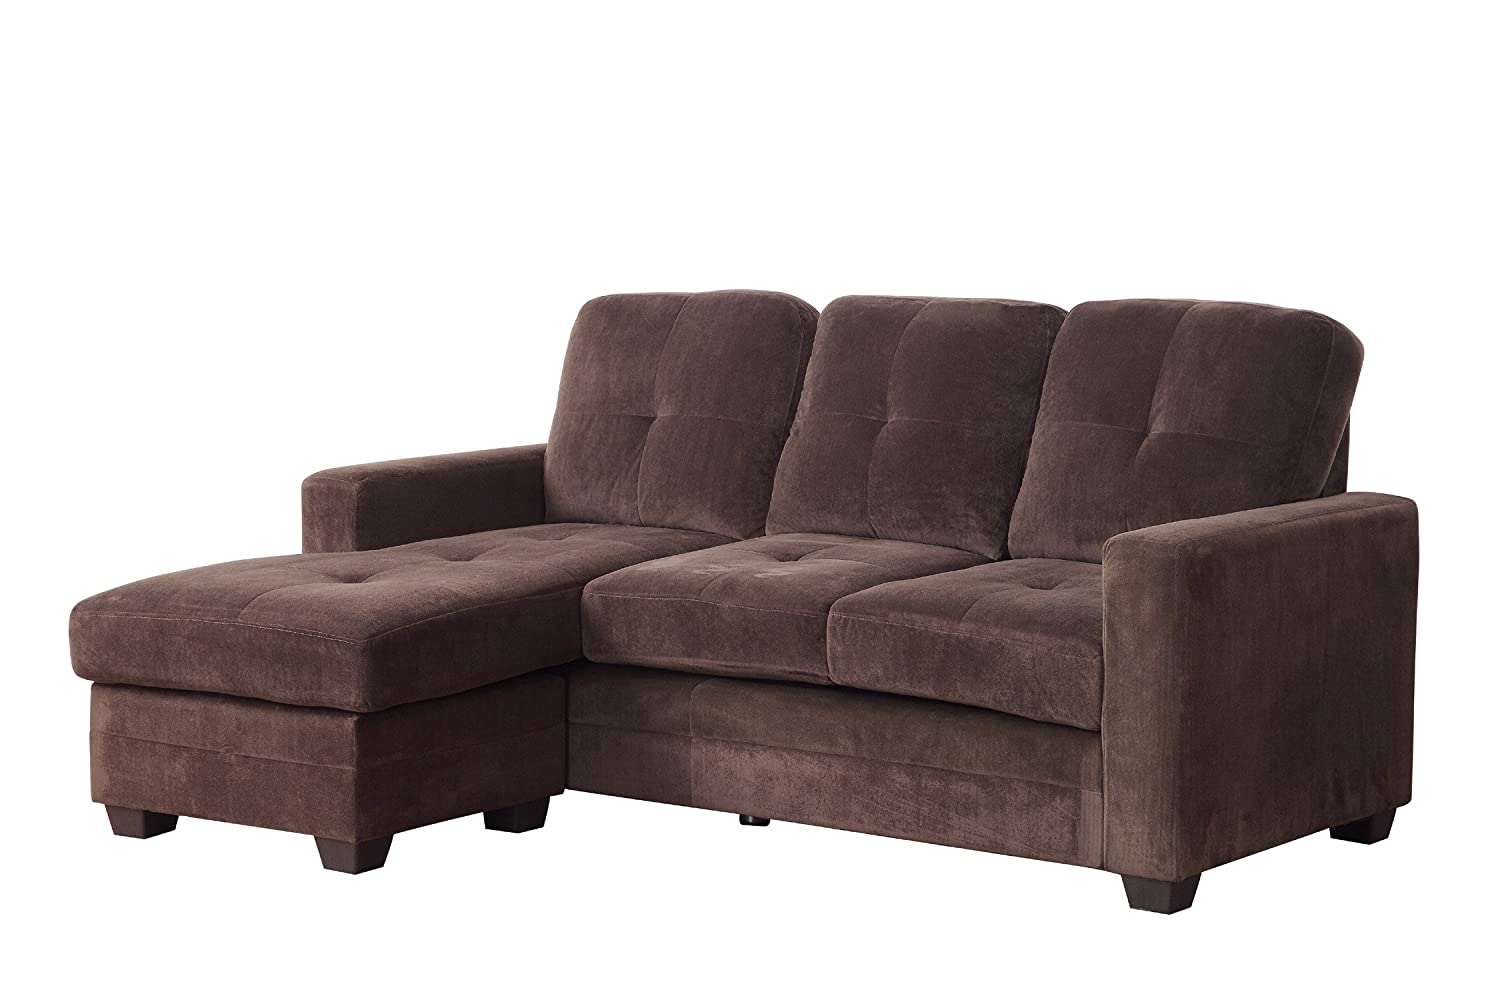 Homelegance 9789CF-3LC Sectional Sofa with Reversible Chaise - Coffee/Dark Brown Microfiber